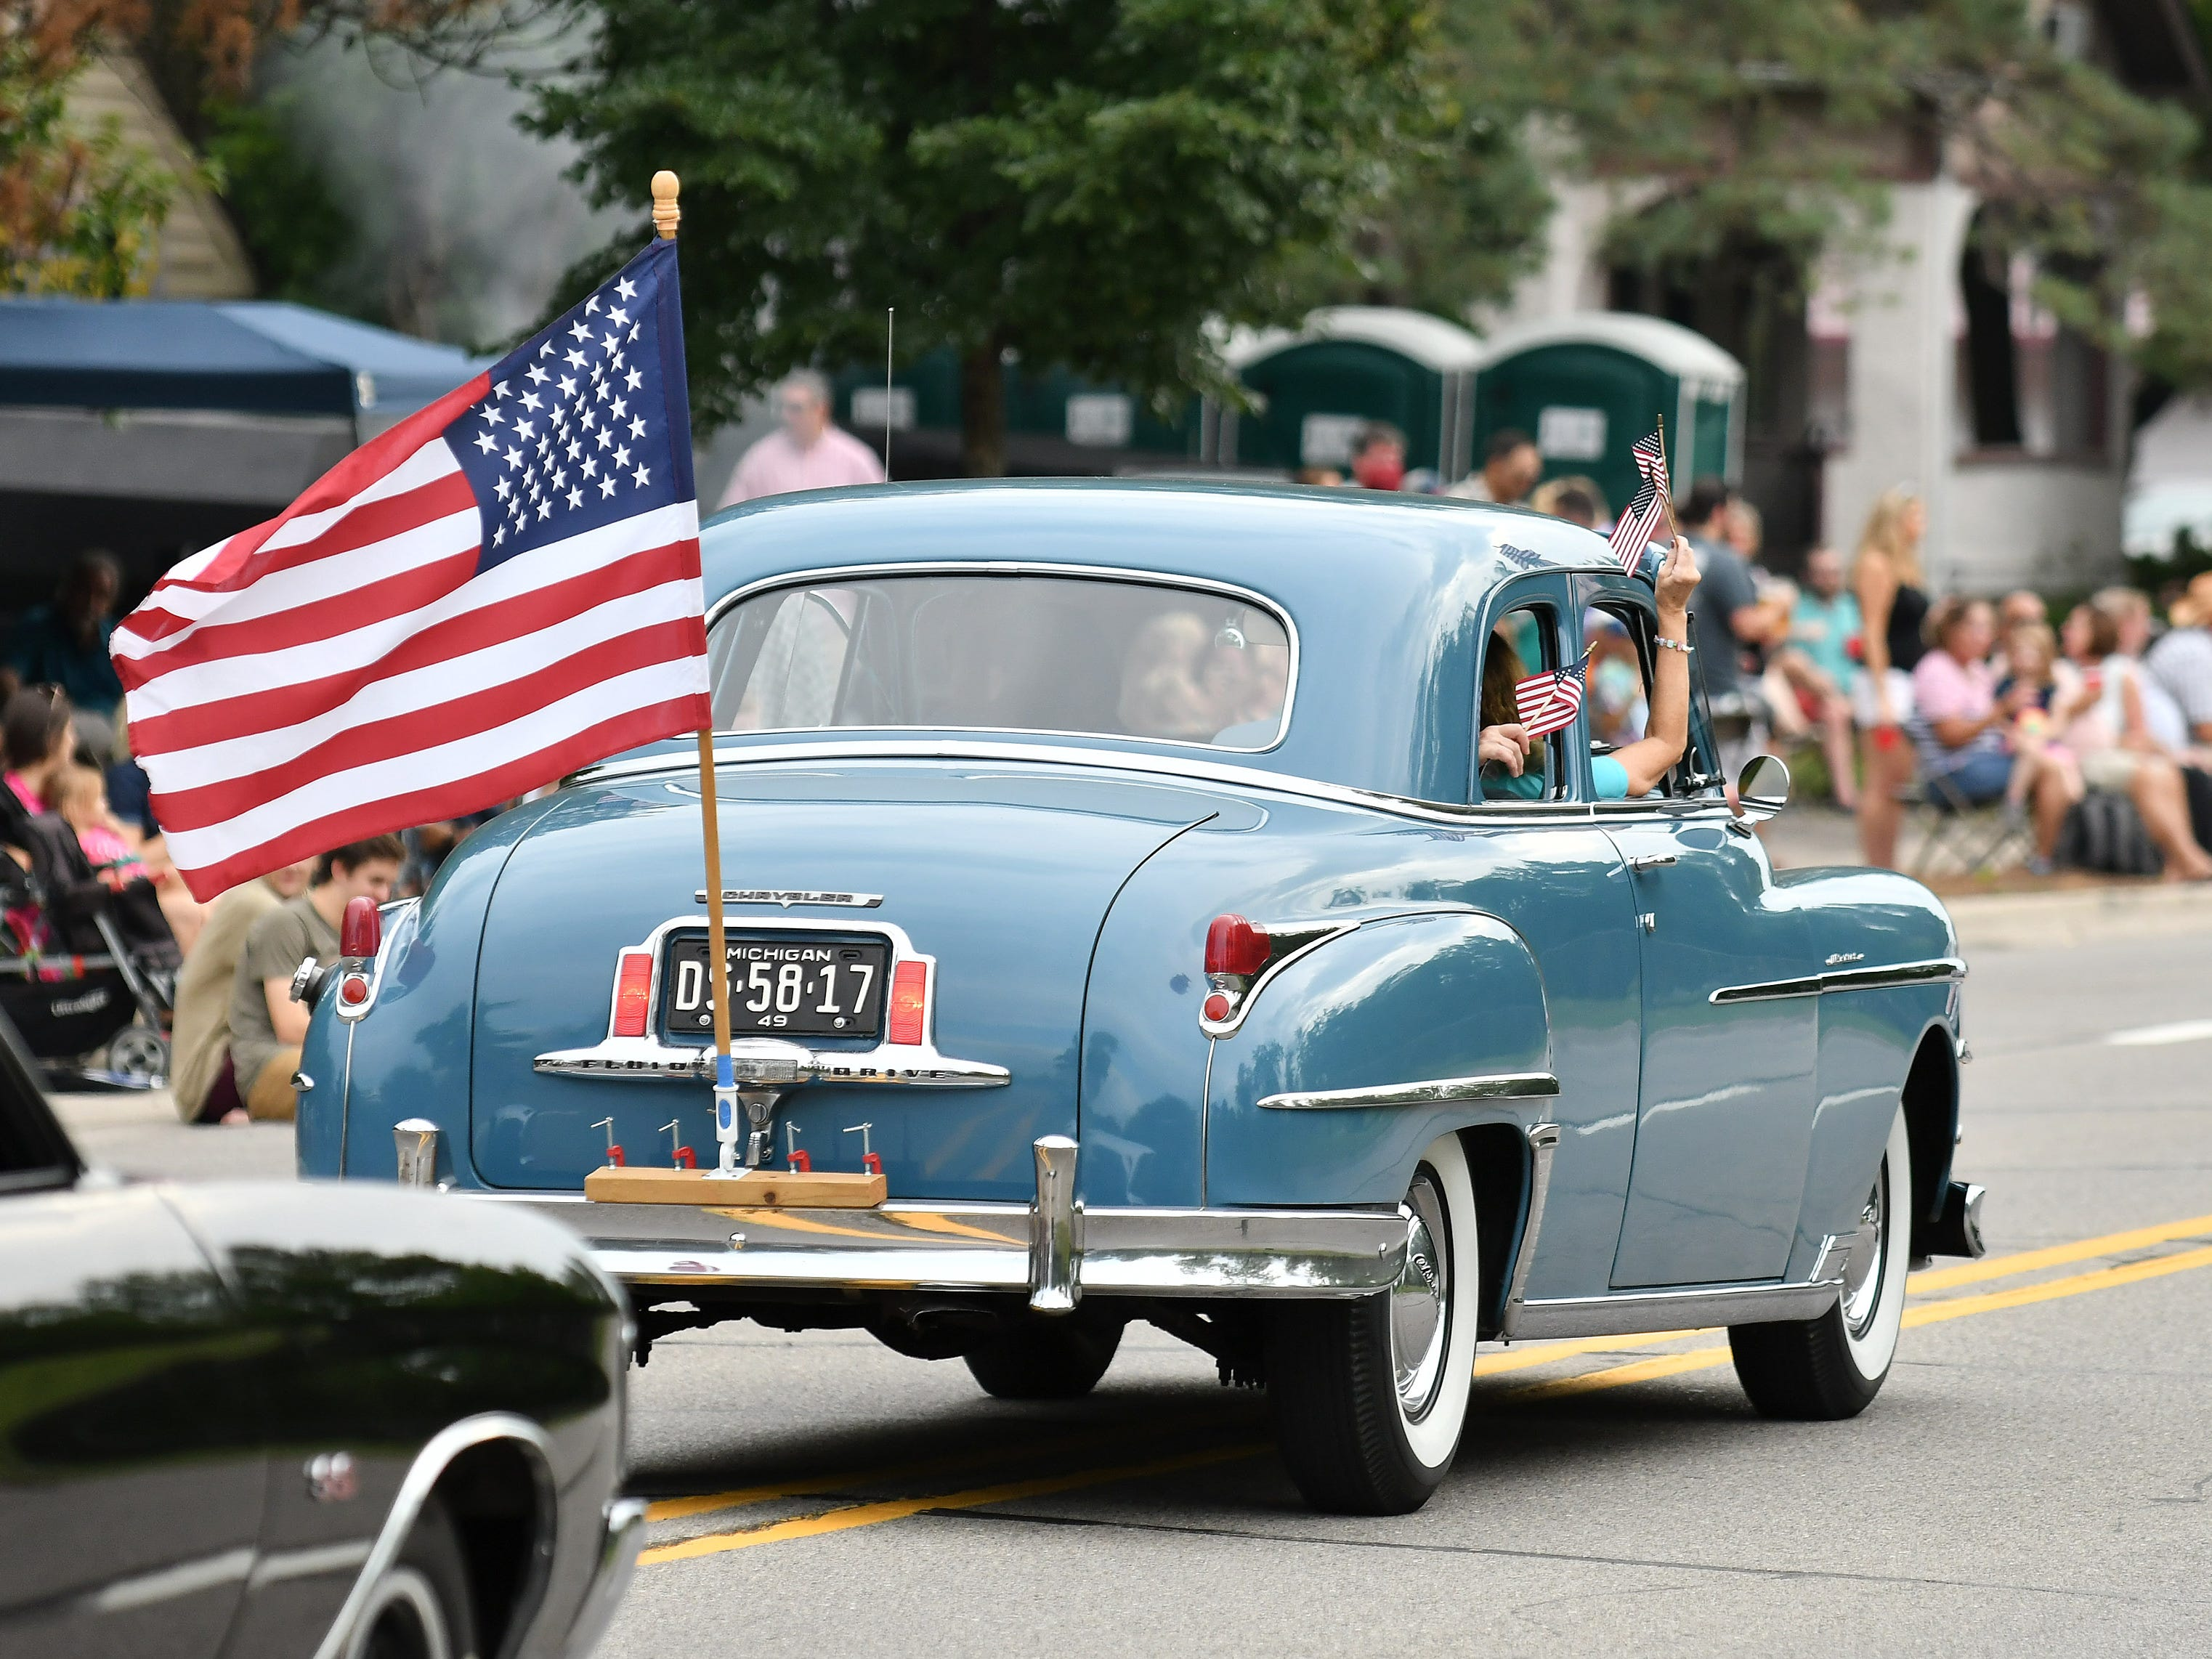 A 1949 Chrysler rolls in the Berkley CruiseFest Classic Car Parade.